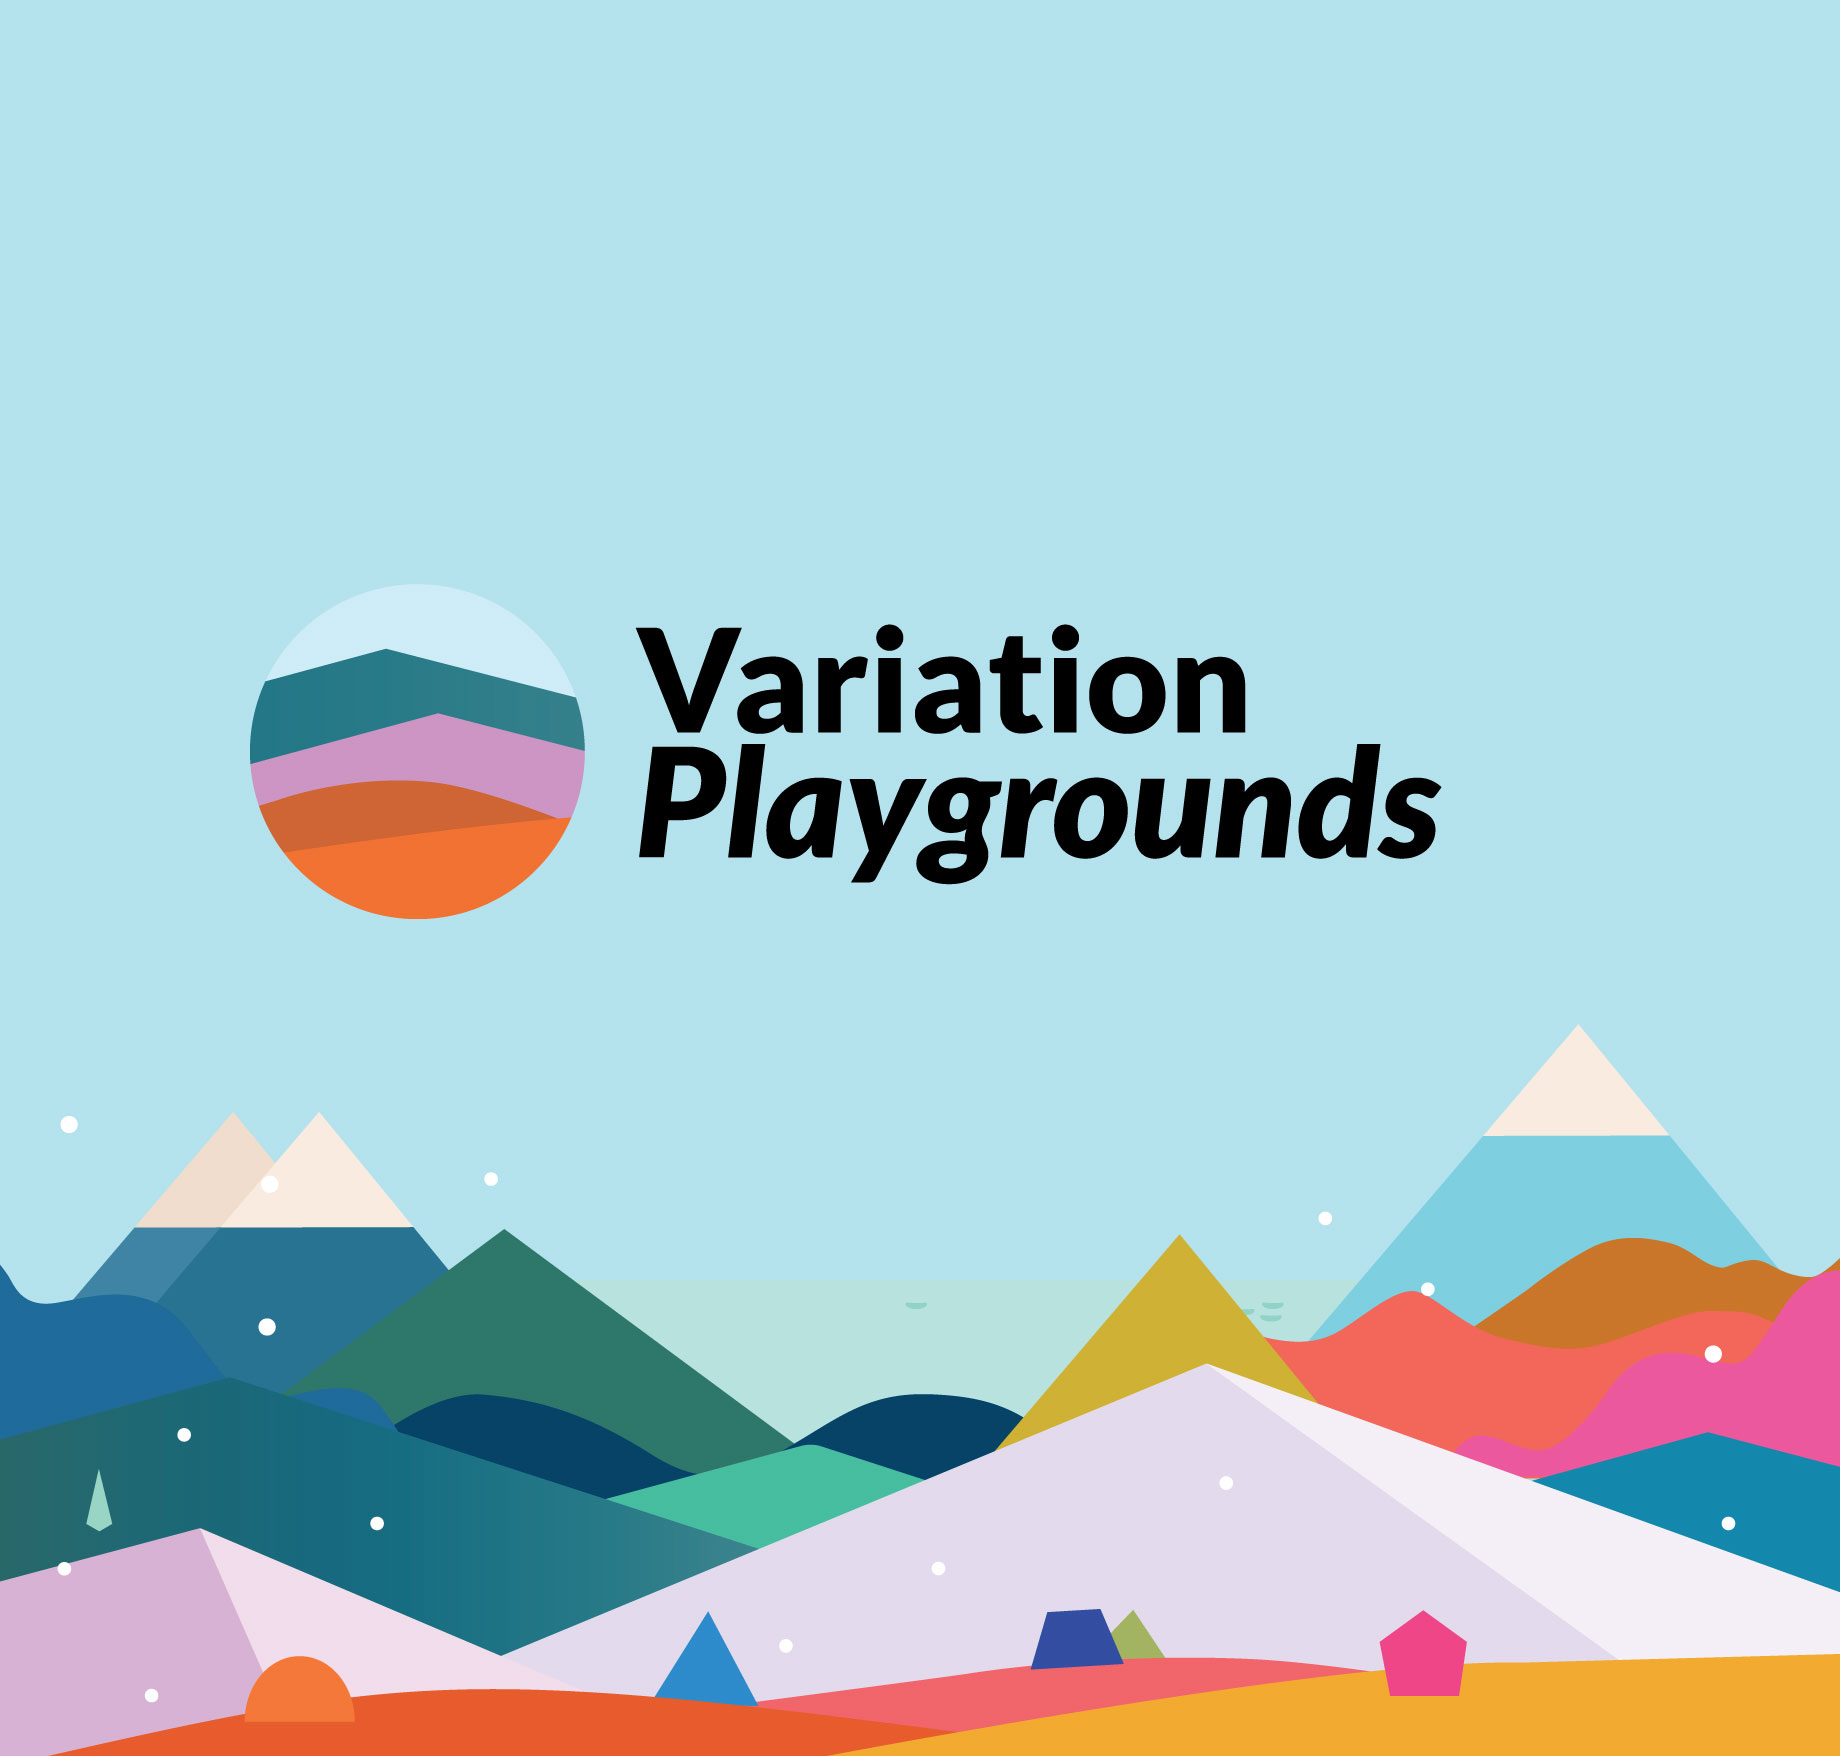 Variation Playgrounds